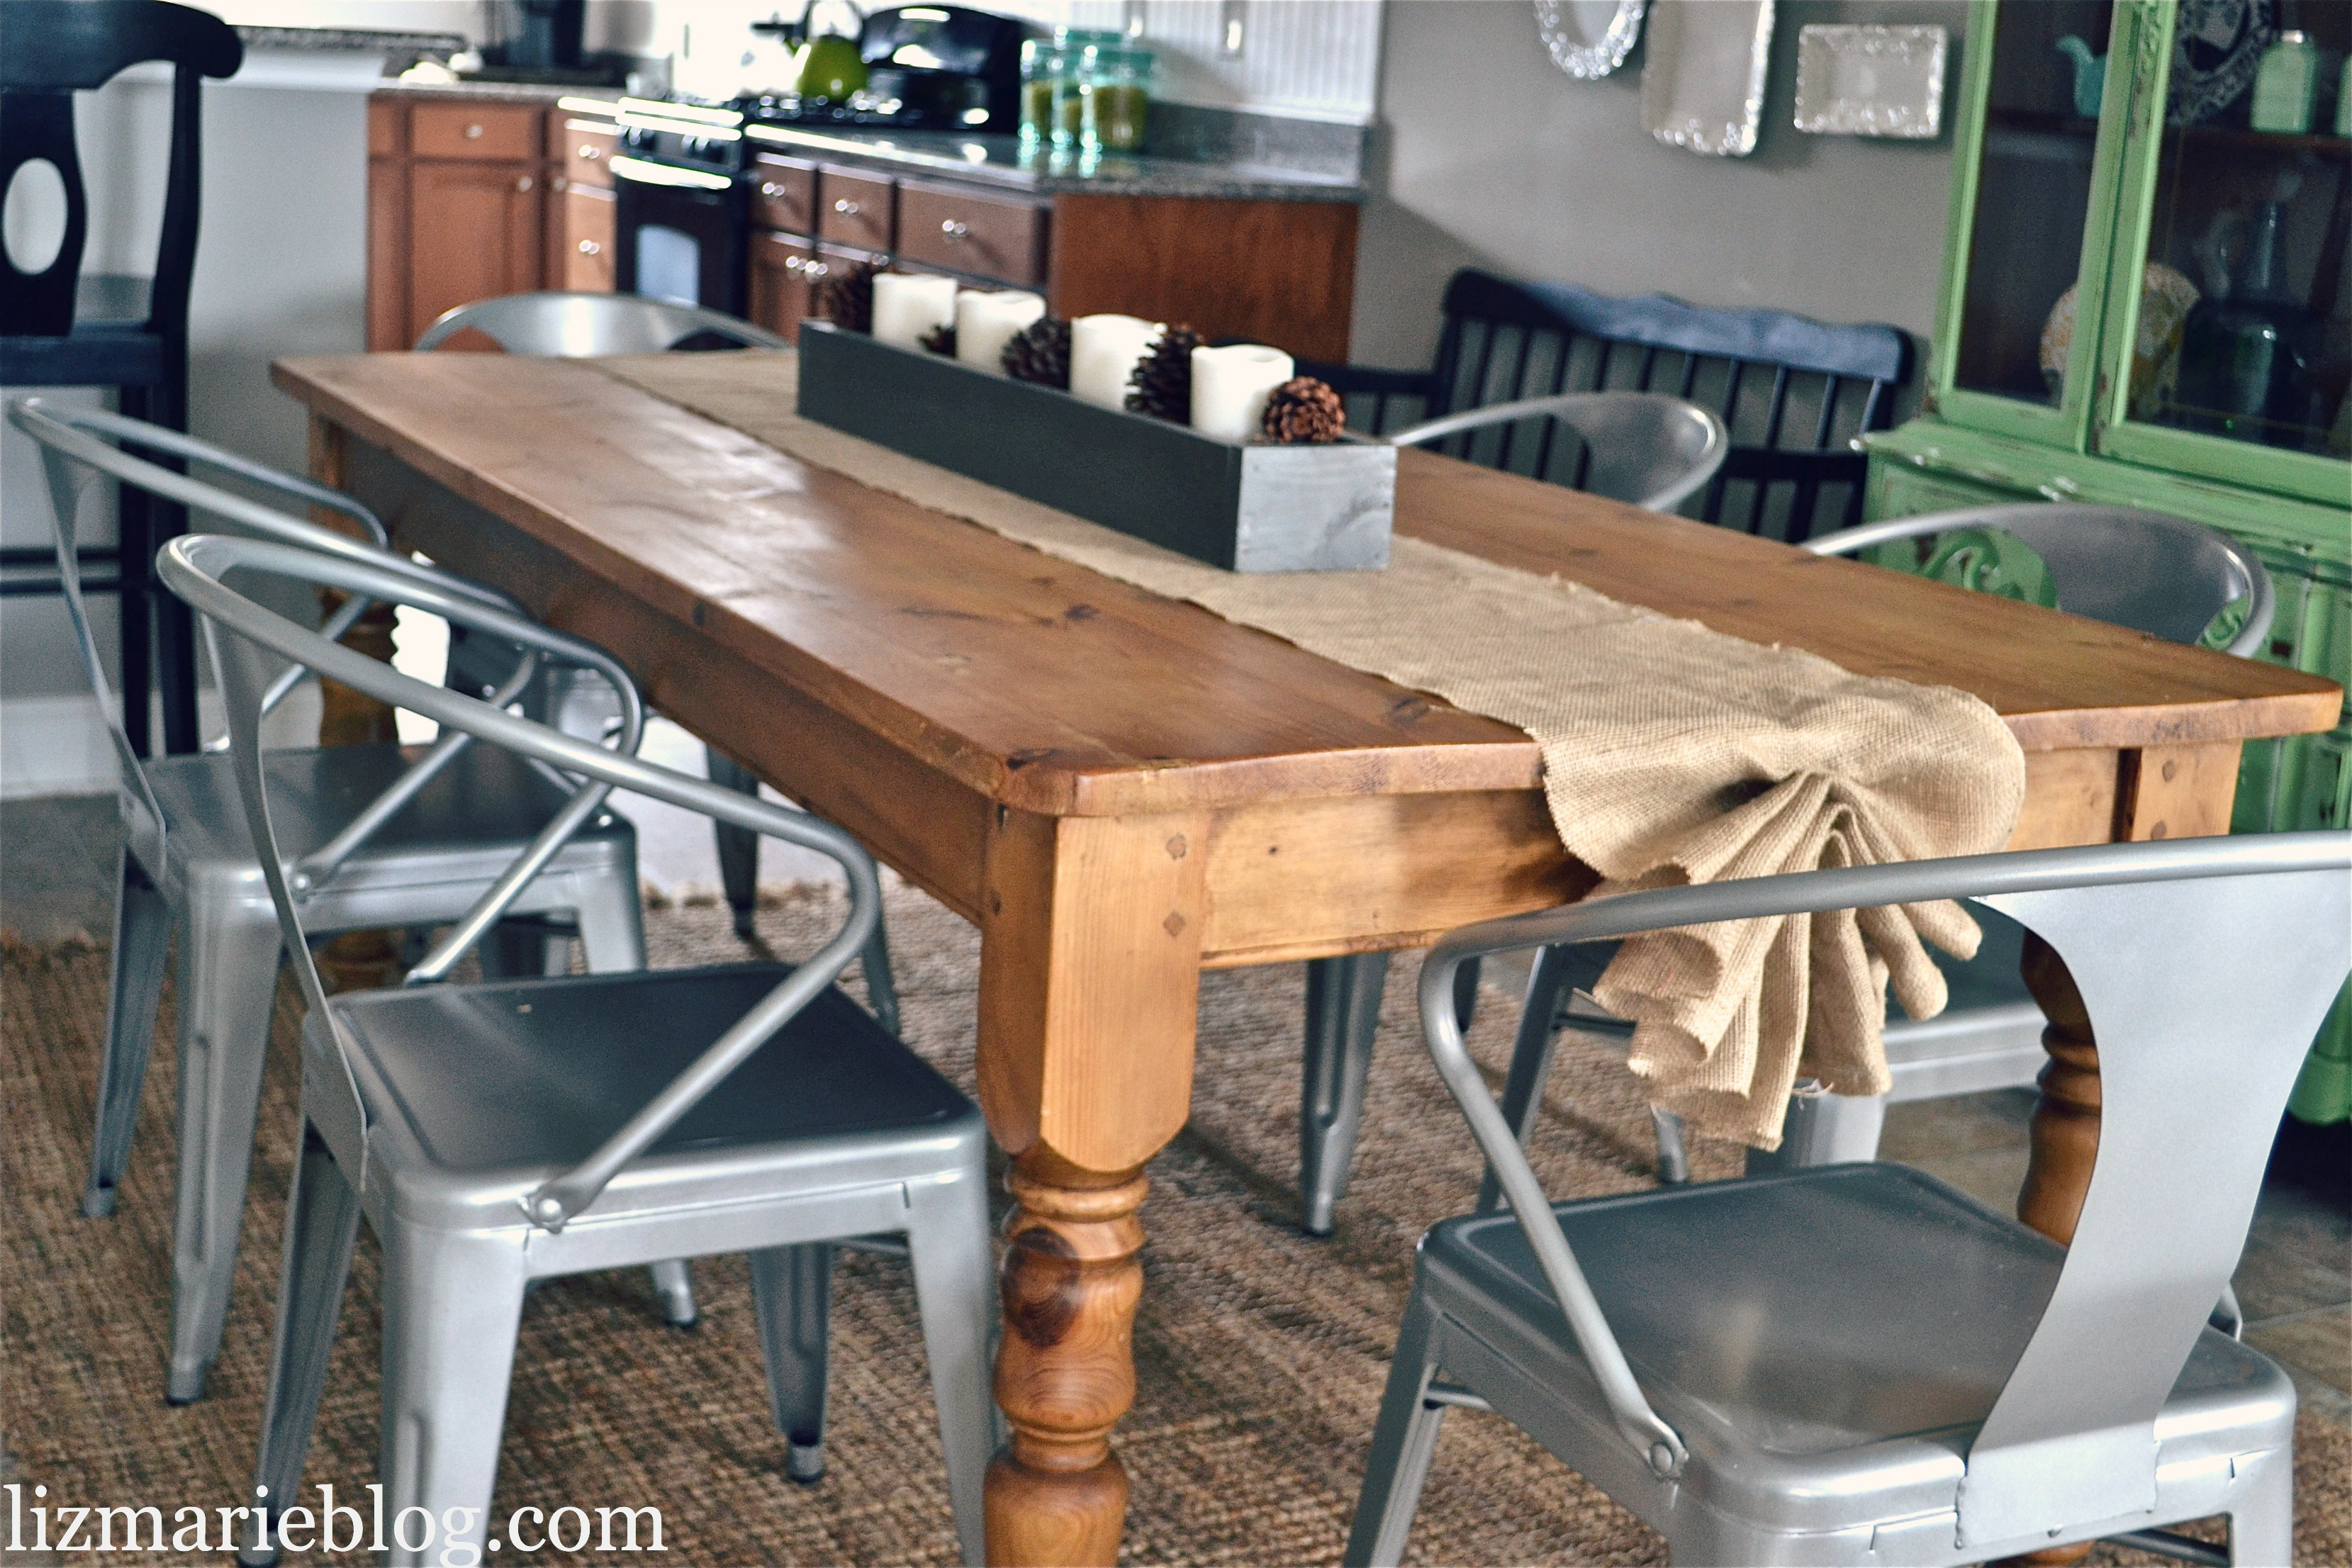 diy burlap table runner - liz marie blog